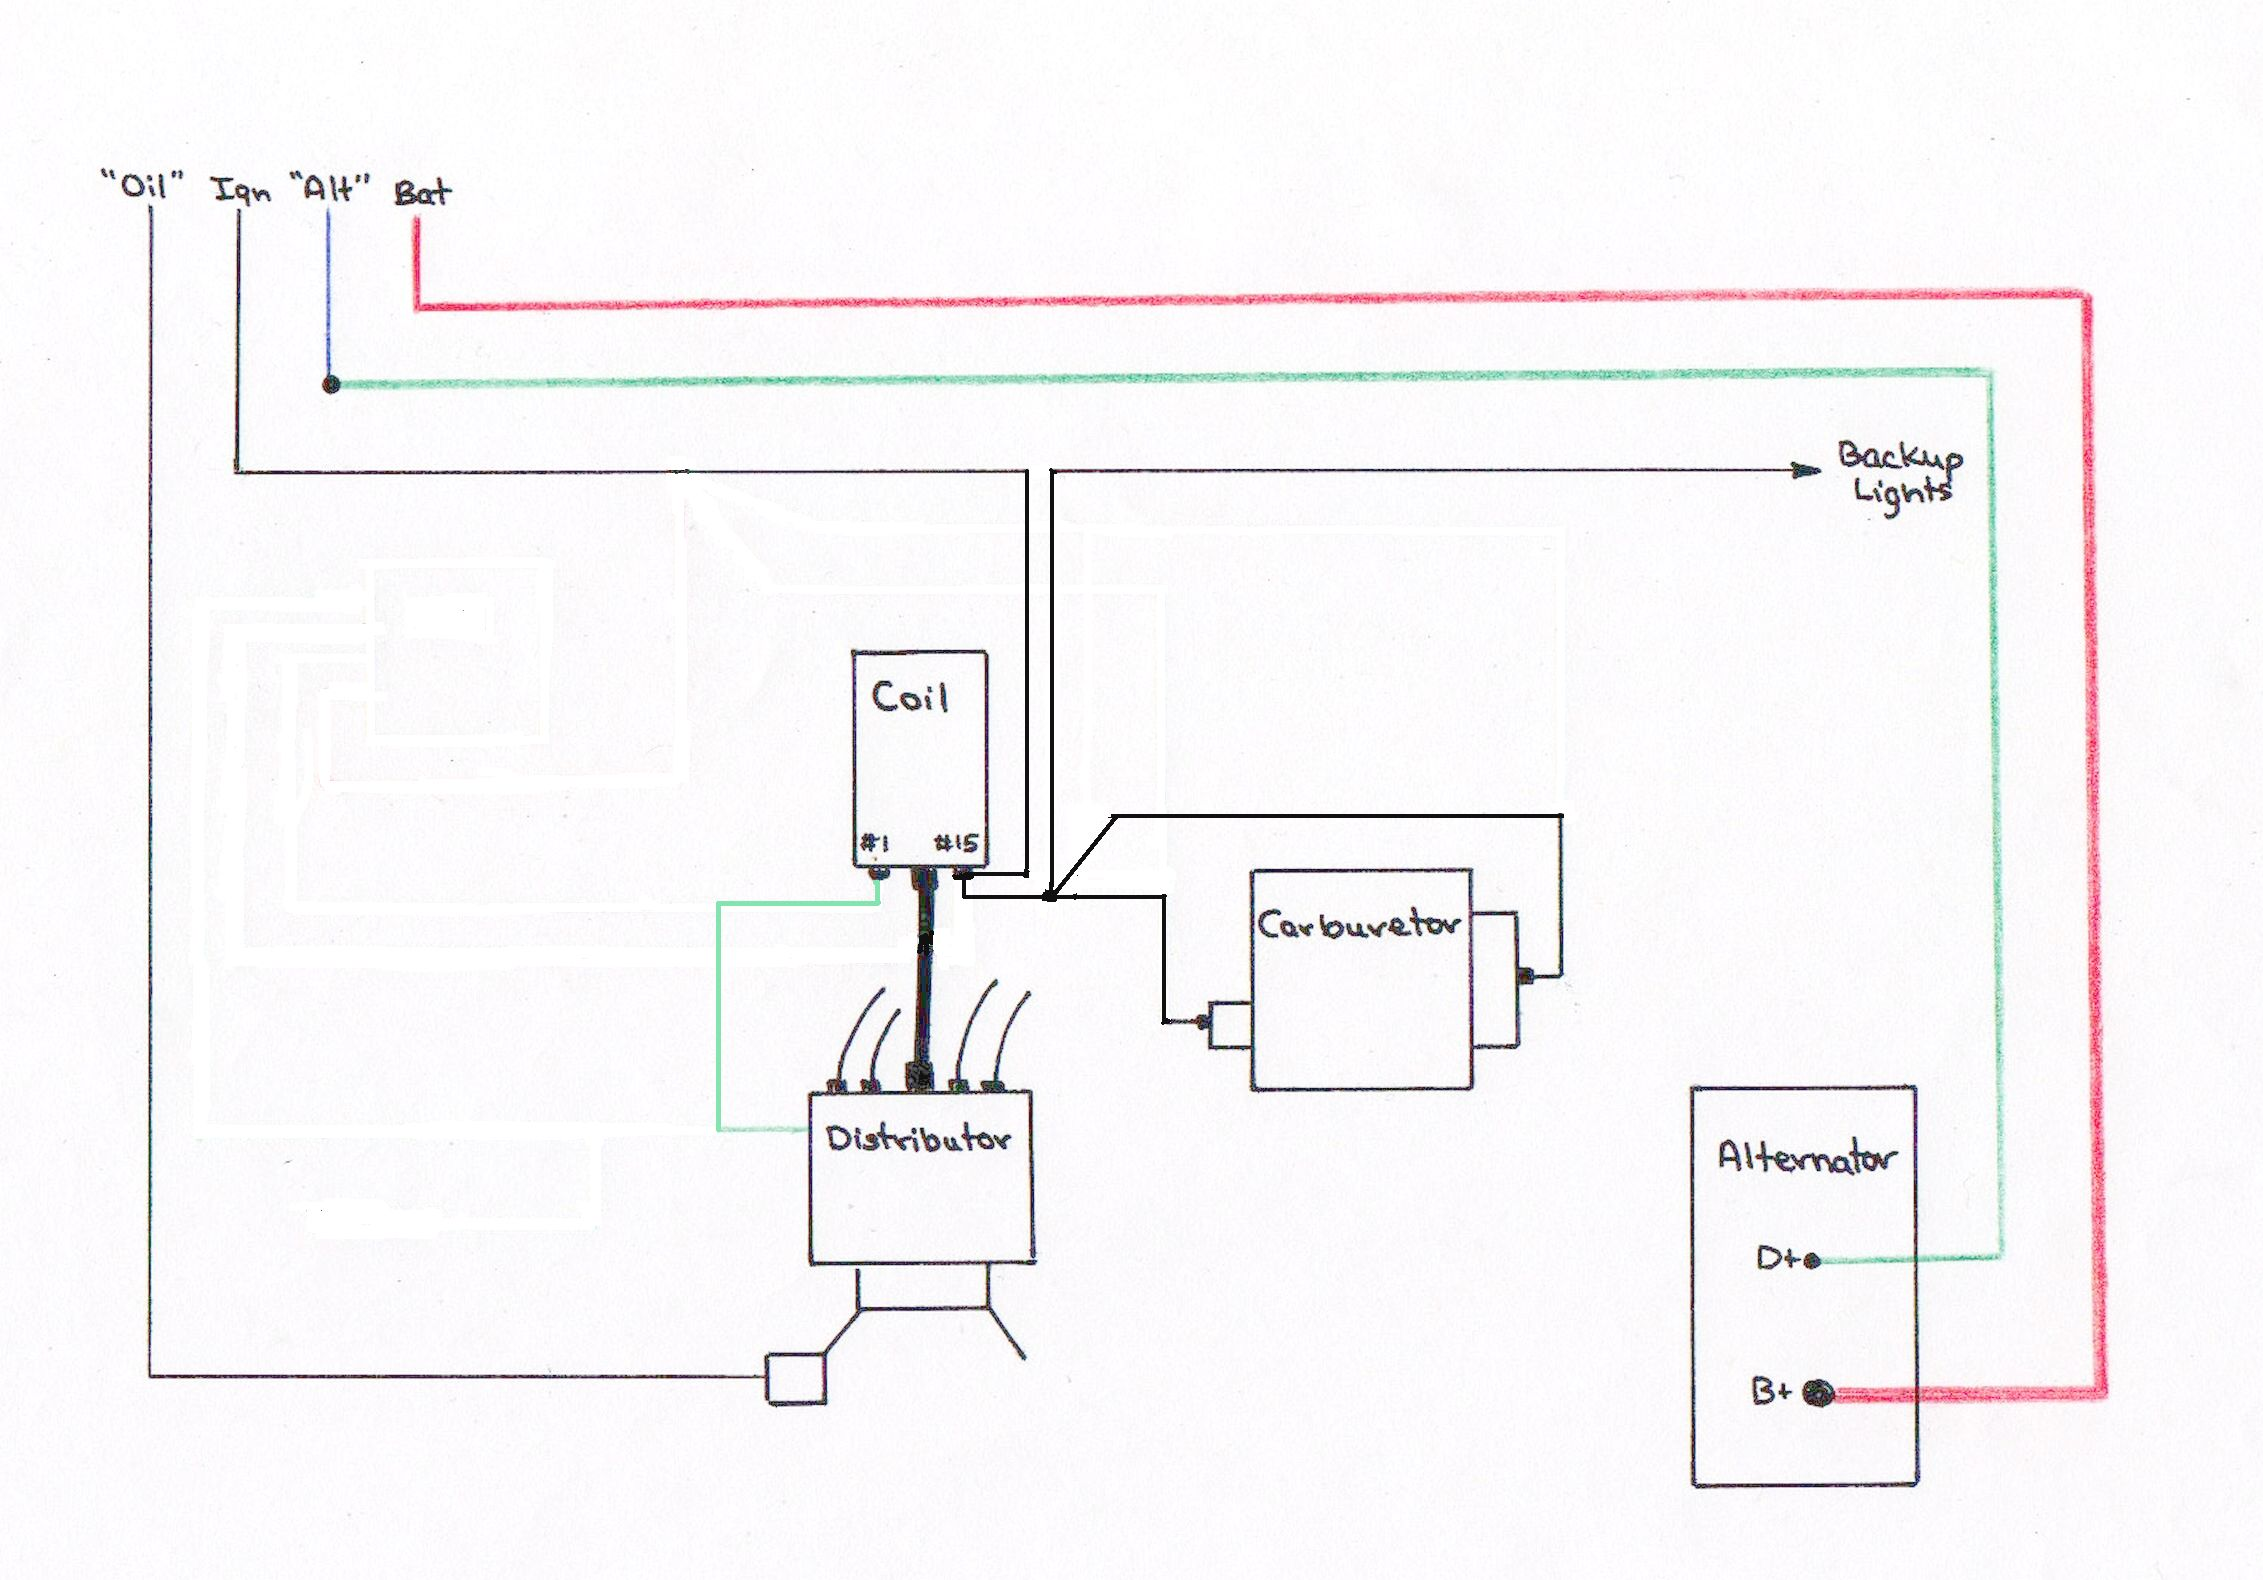 handdrawn_schematic alternator wiring vw engine wiring diagram at crackthecode.co